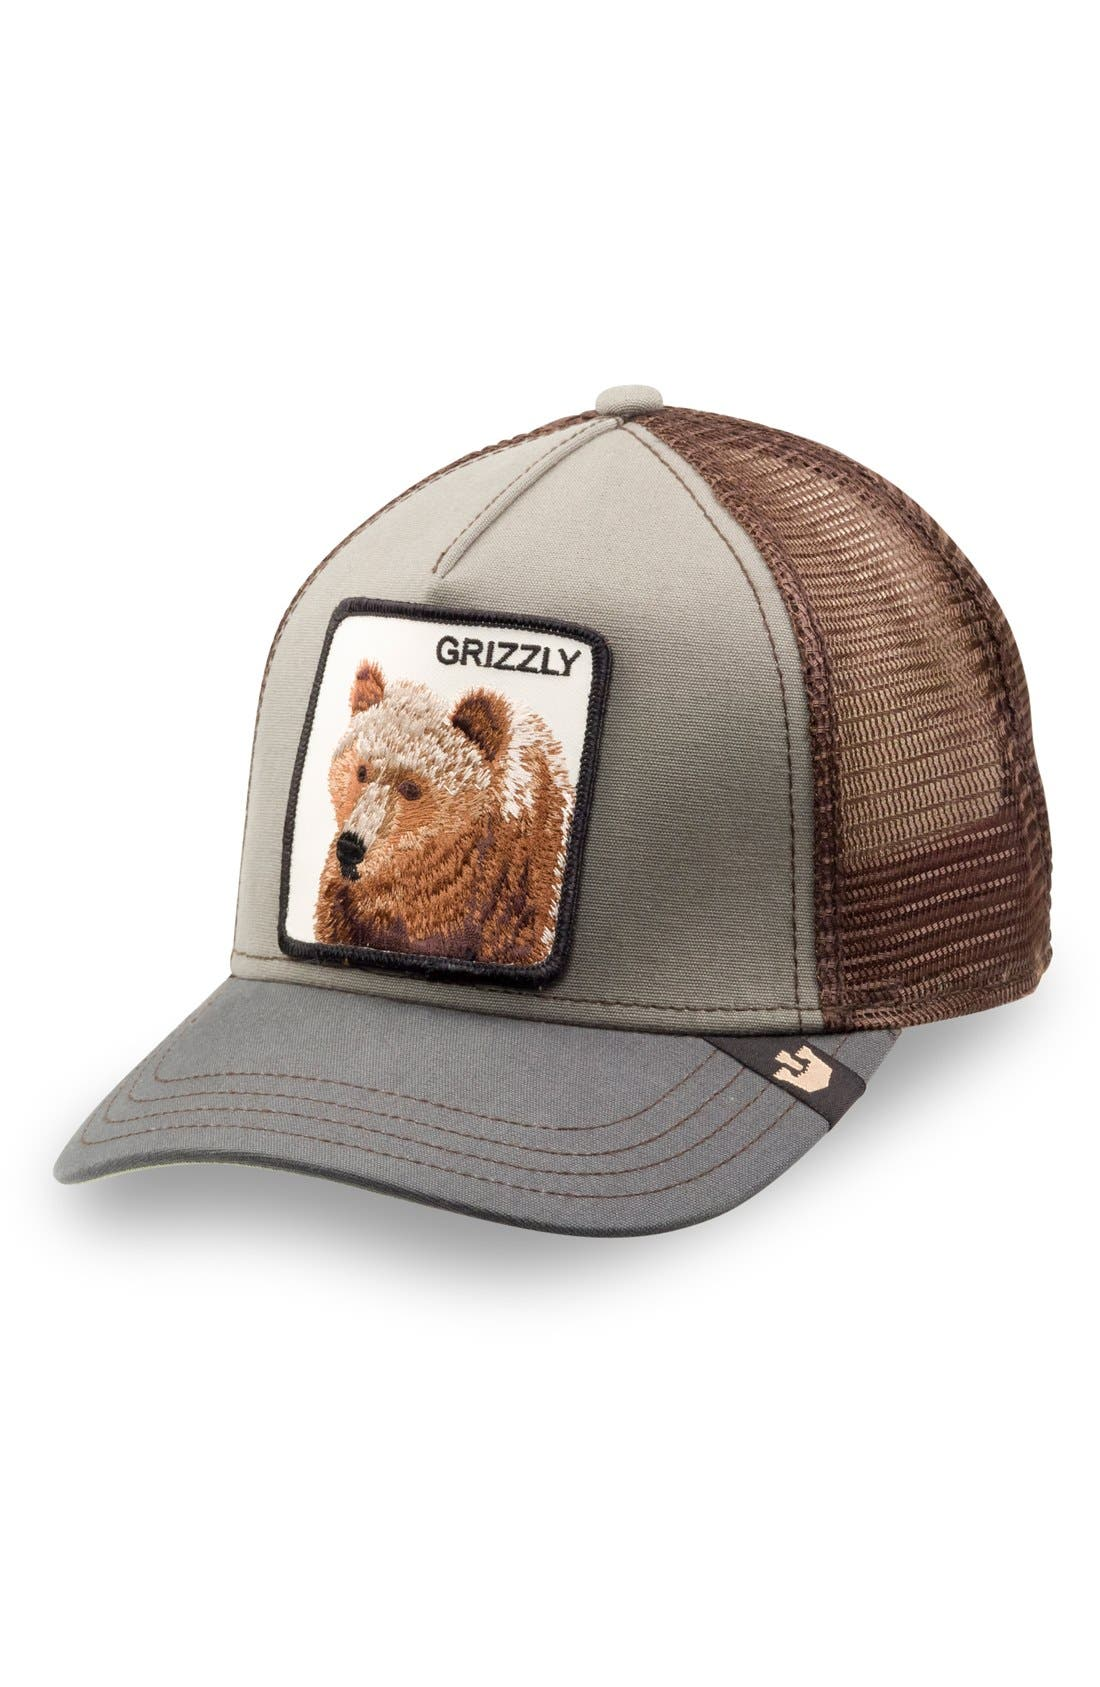 GOORIN BROTHERS Animal Farm - Grizz Mesh Trucker Hat